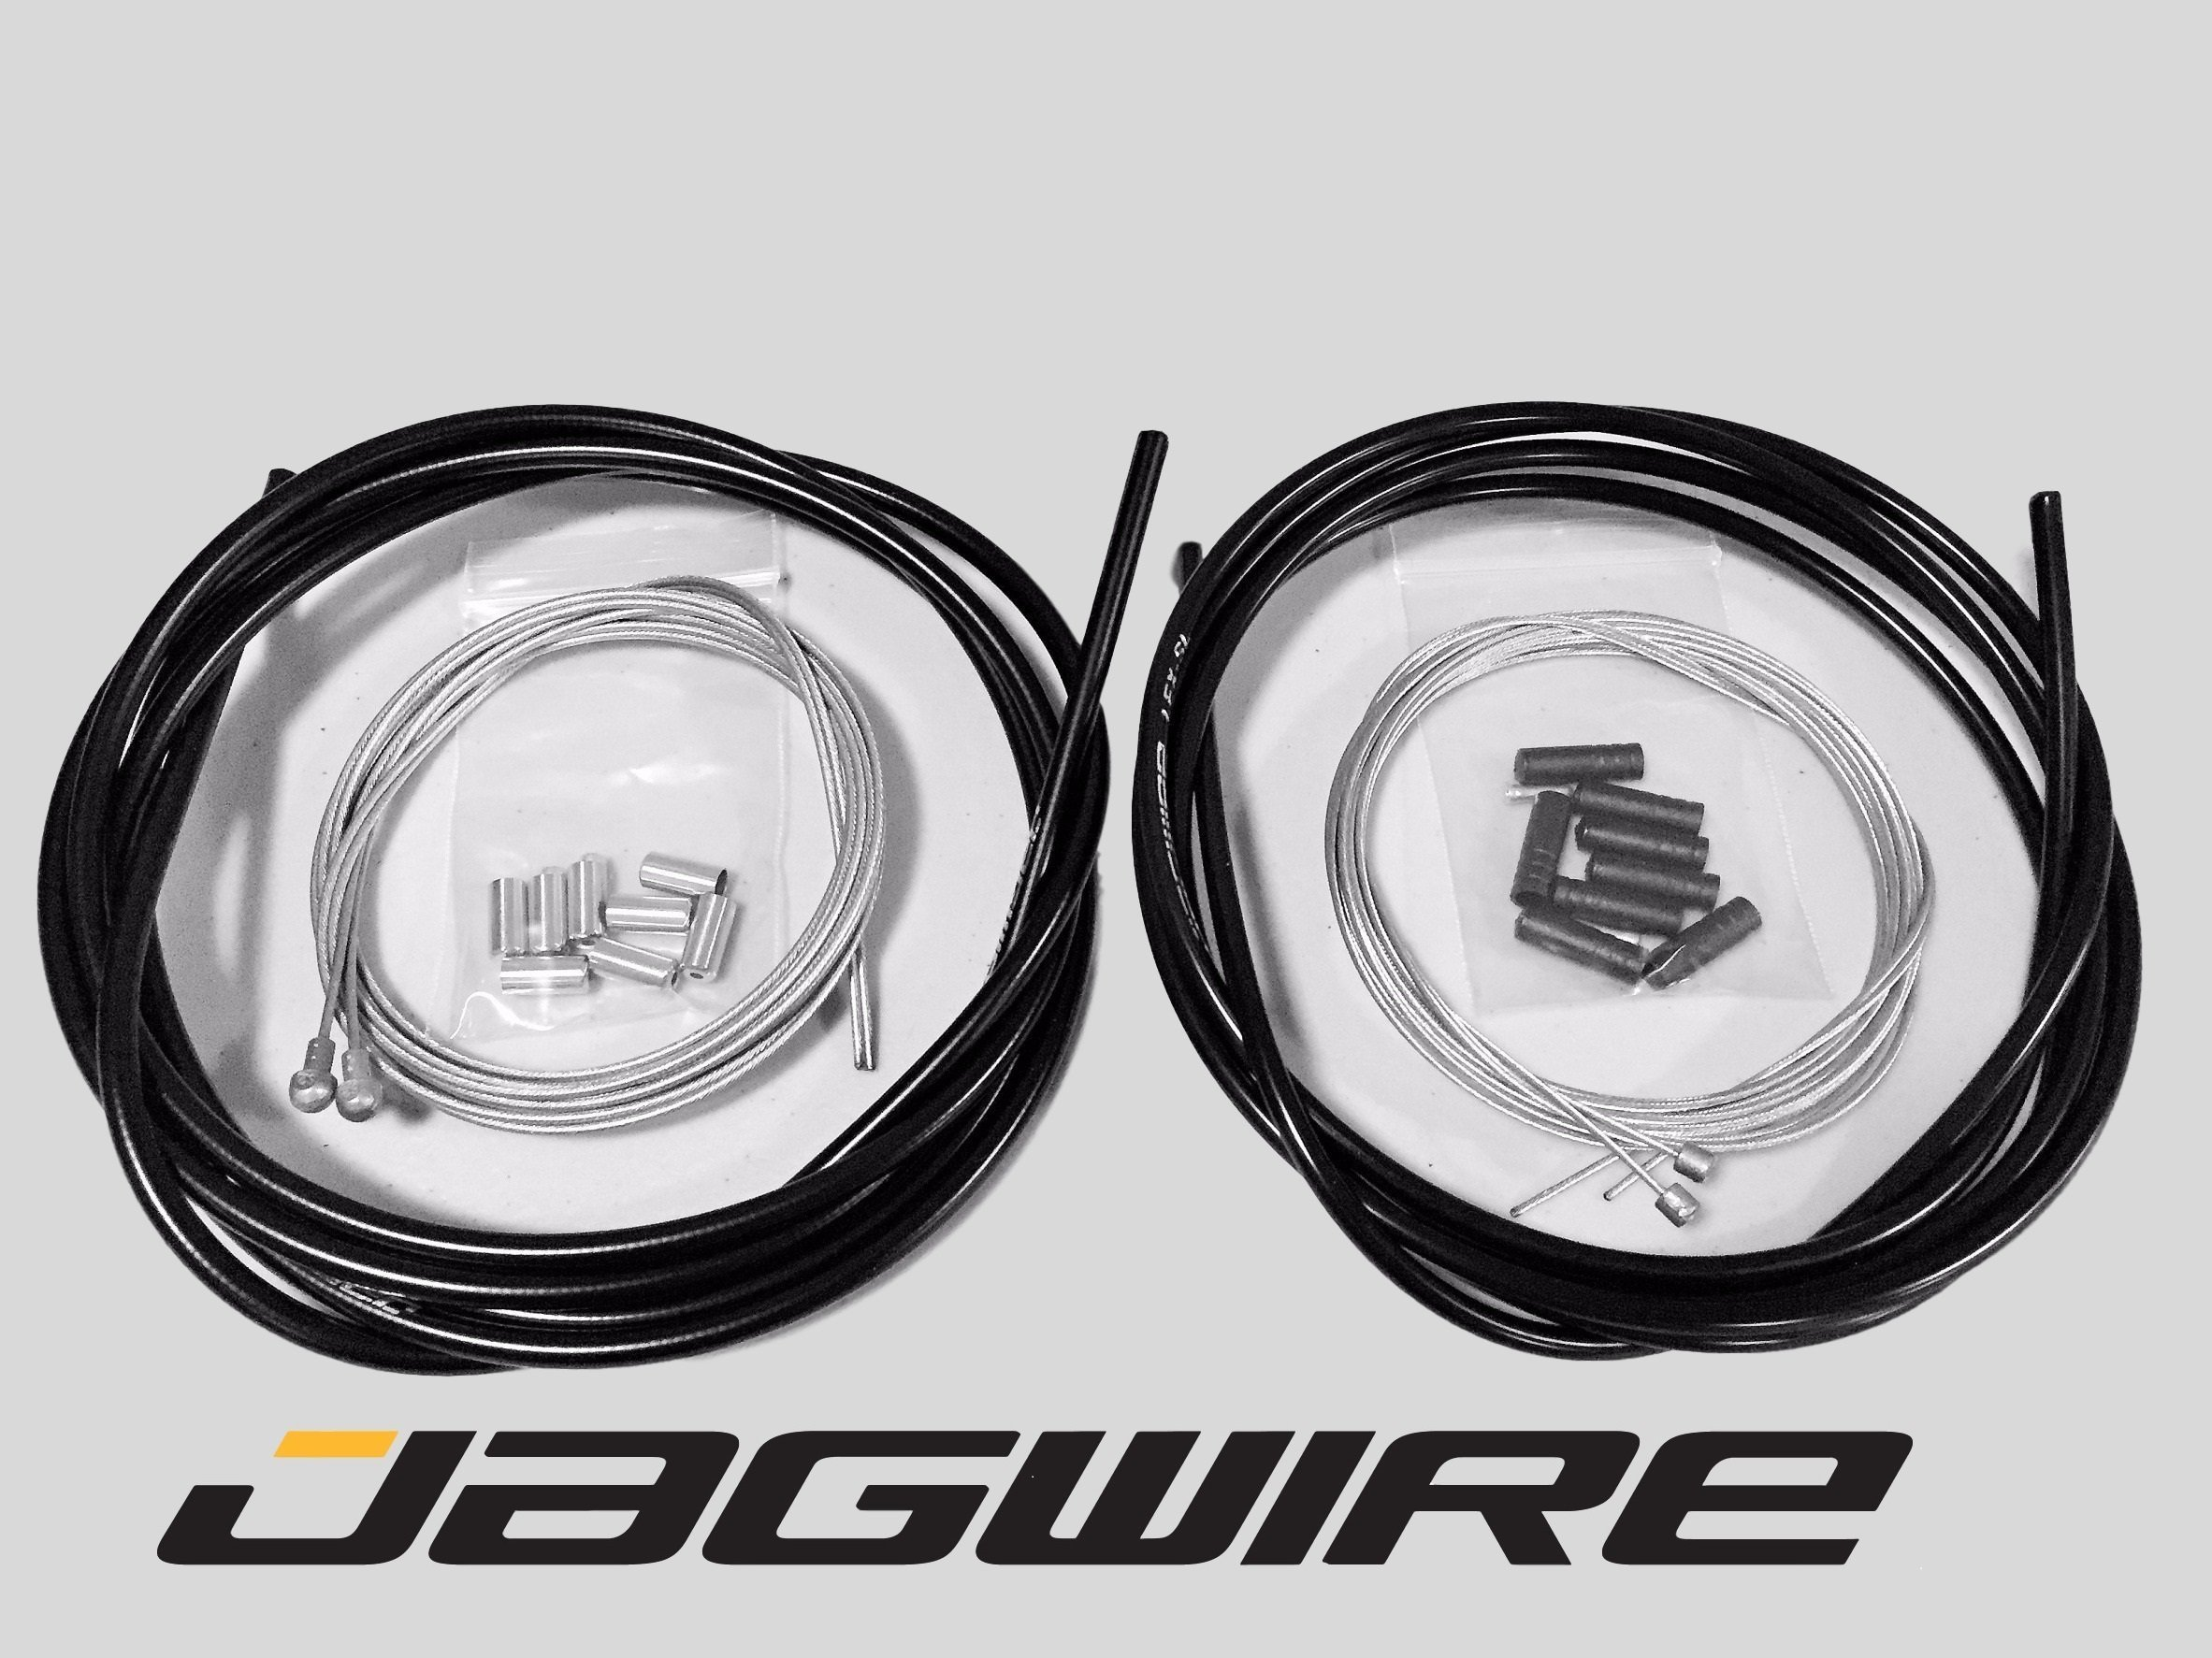 JAGWIRE ROAD SHOP KIT - Complete Brake & Shifter Cable and Housing Kit- Black - SRAM/Shimano by Jagwire (Image #1)